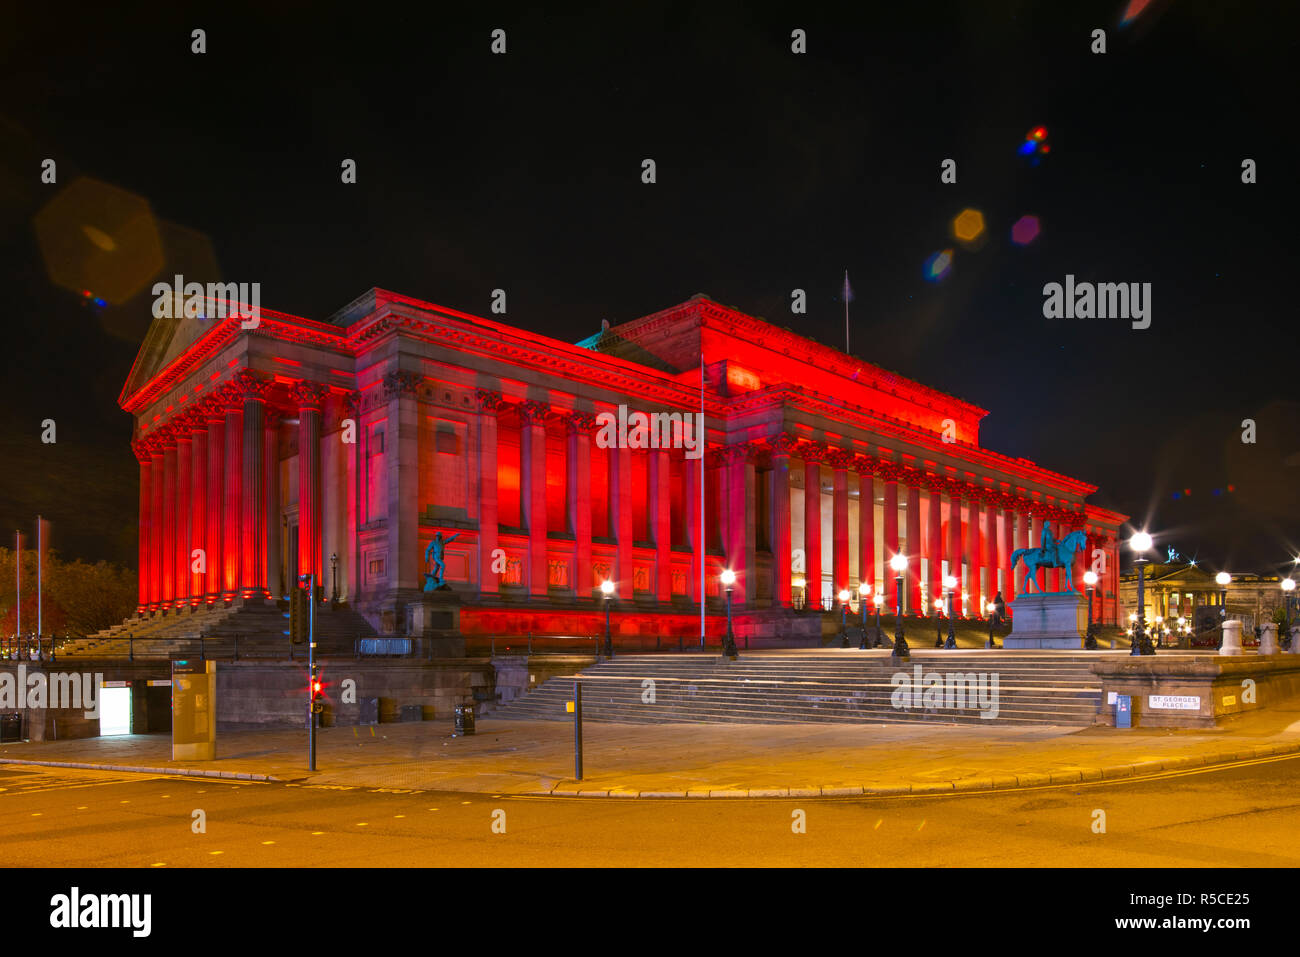 St Georges Hall, Armistice Day 11.11.2018. Credit PHILLIP ROBERTS - Stock Image